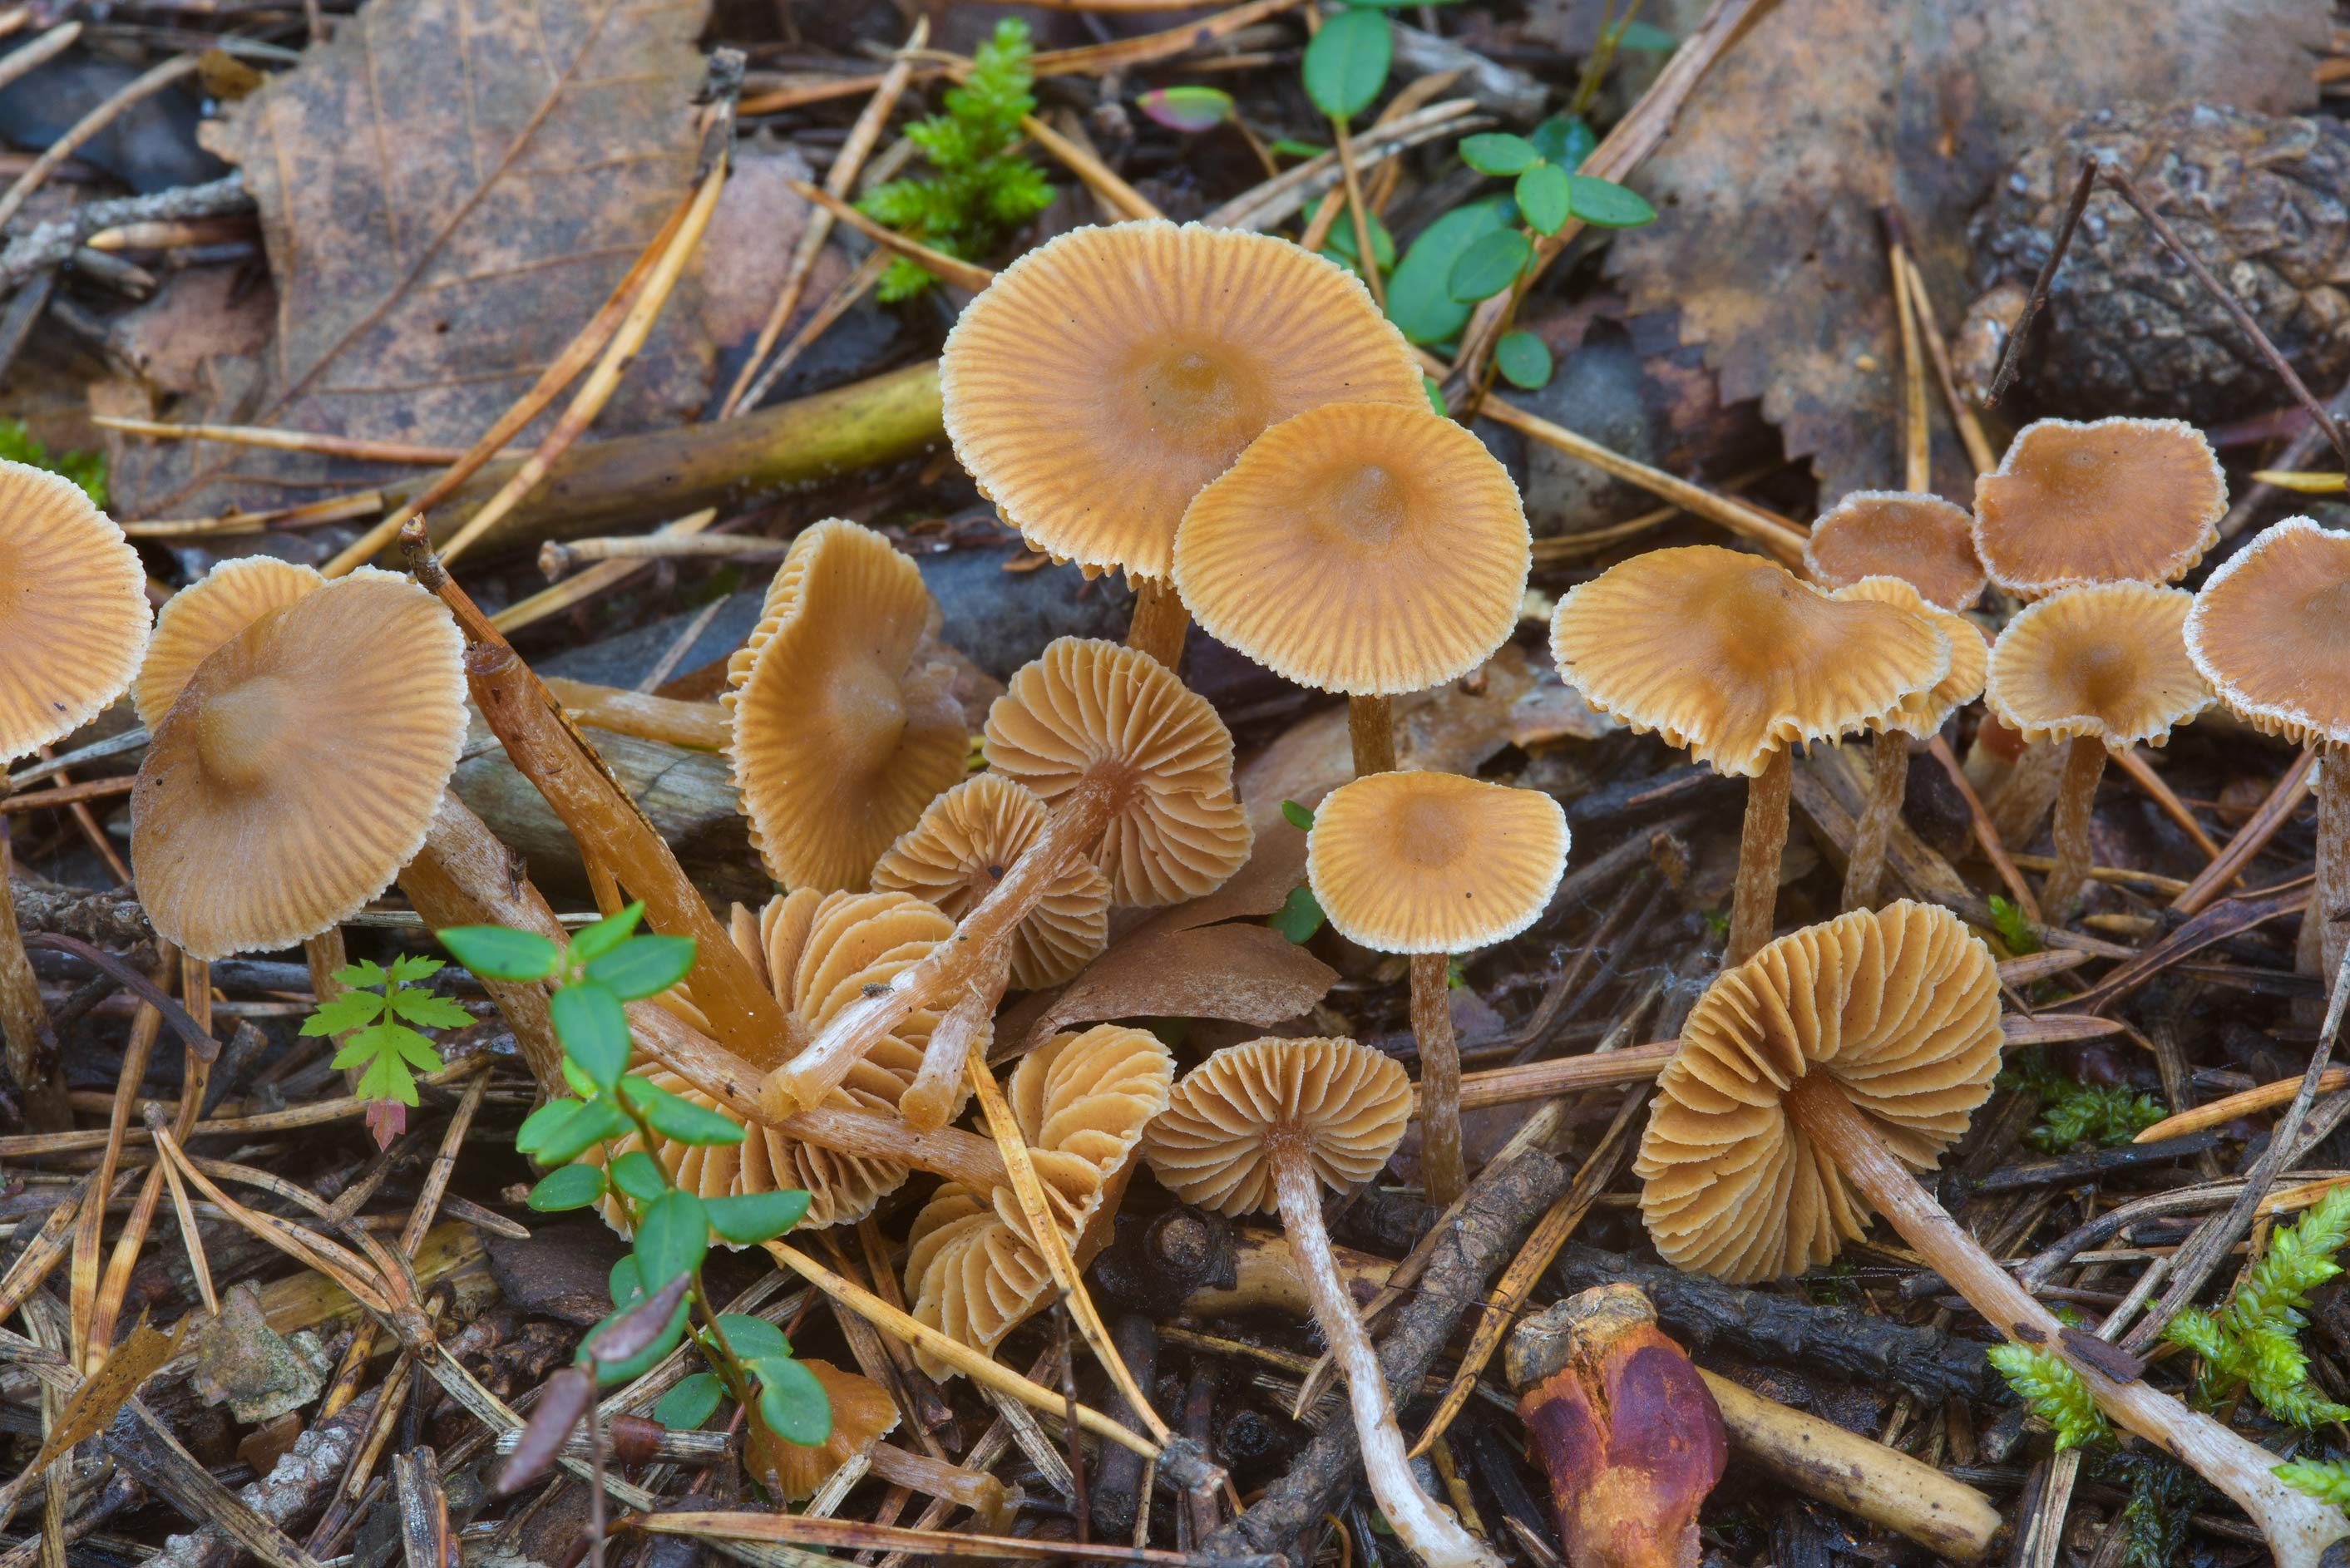 Striate aldercap mushrooms (Naucoria striatula...Sosnovka Park. St.Petersburg, Russia